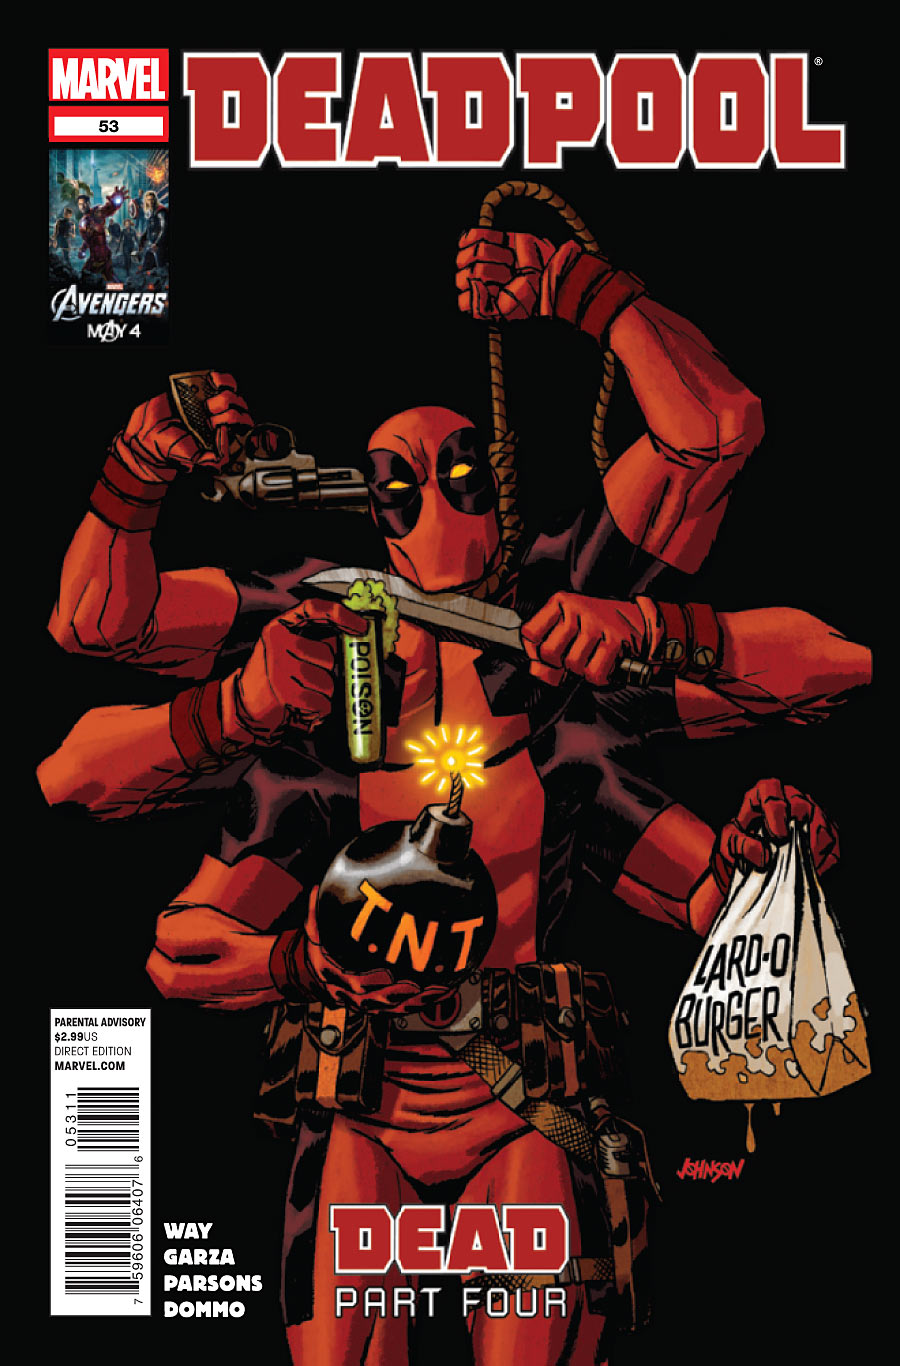 Deadpool Vol. 2 #53